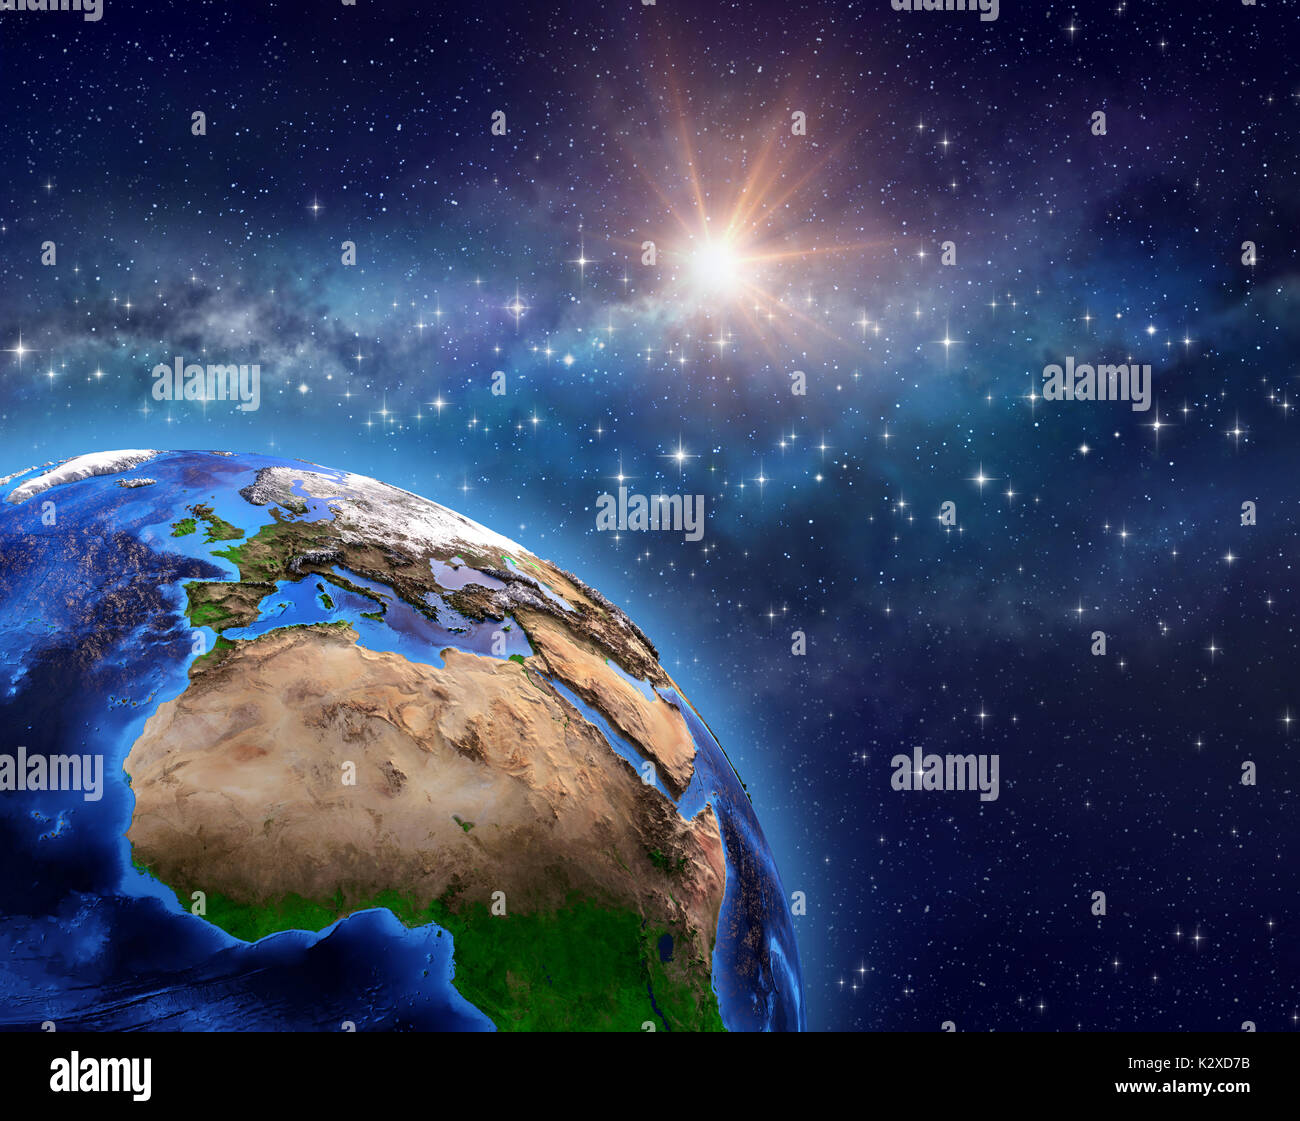 Planet Earth in deep space, star cluster, milky way and bright sun shining far behind - 3D illustration - Elements of this image furnished by NASA - Stock Image